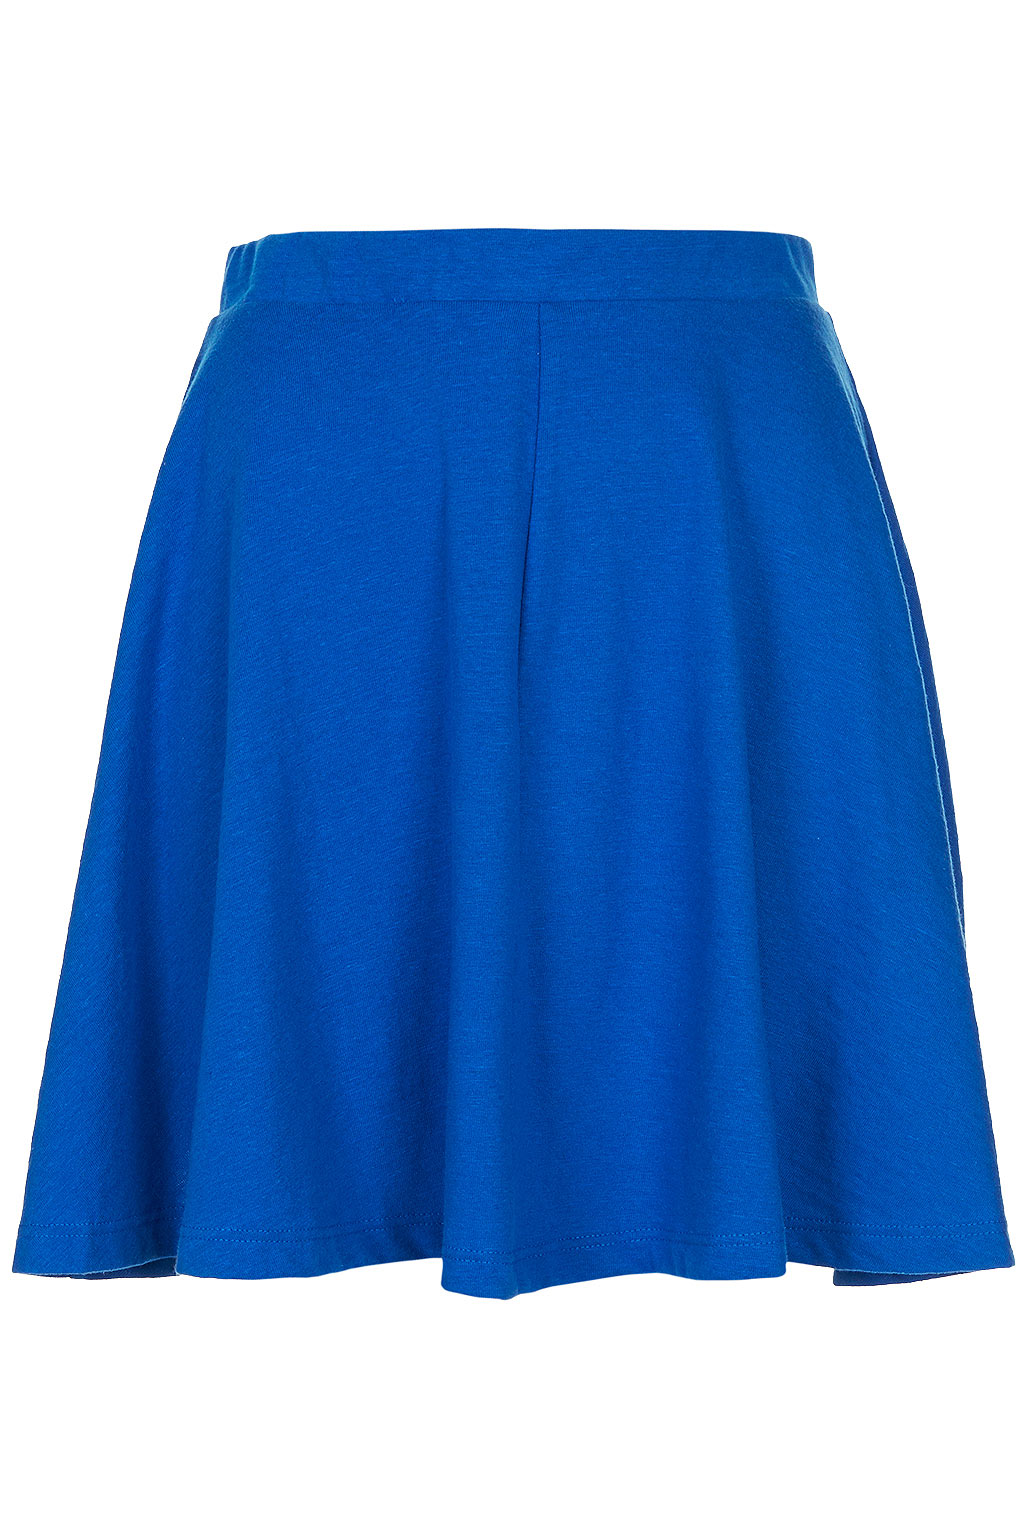 topshop bright blue skater skirt in blue bright blue lyst